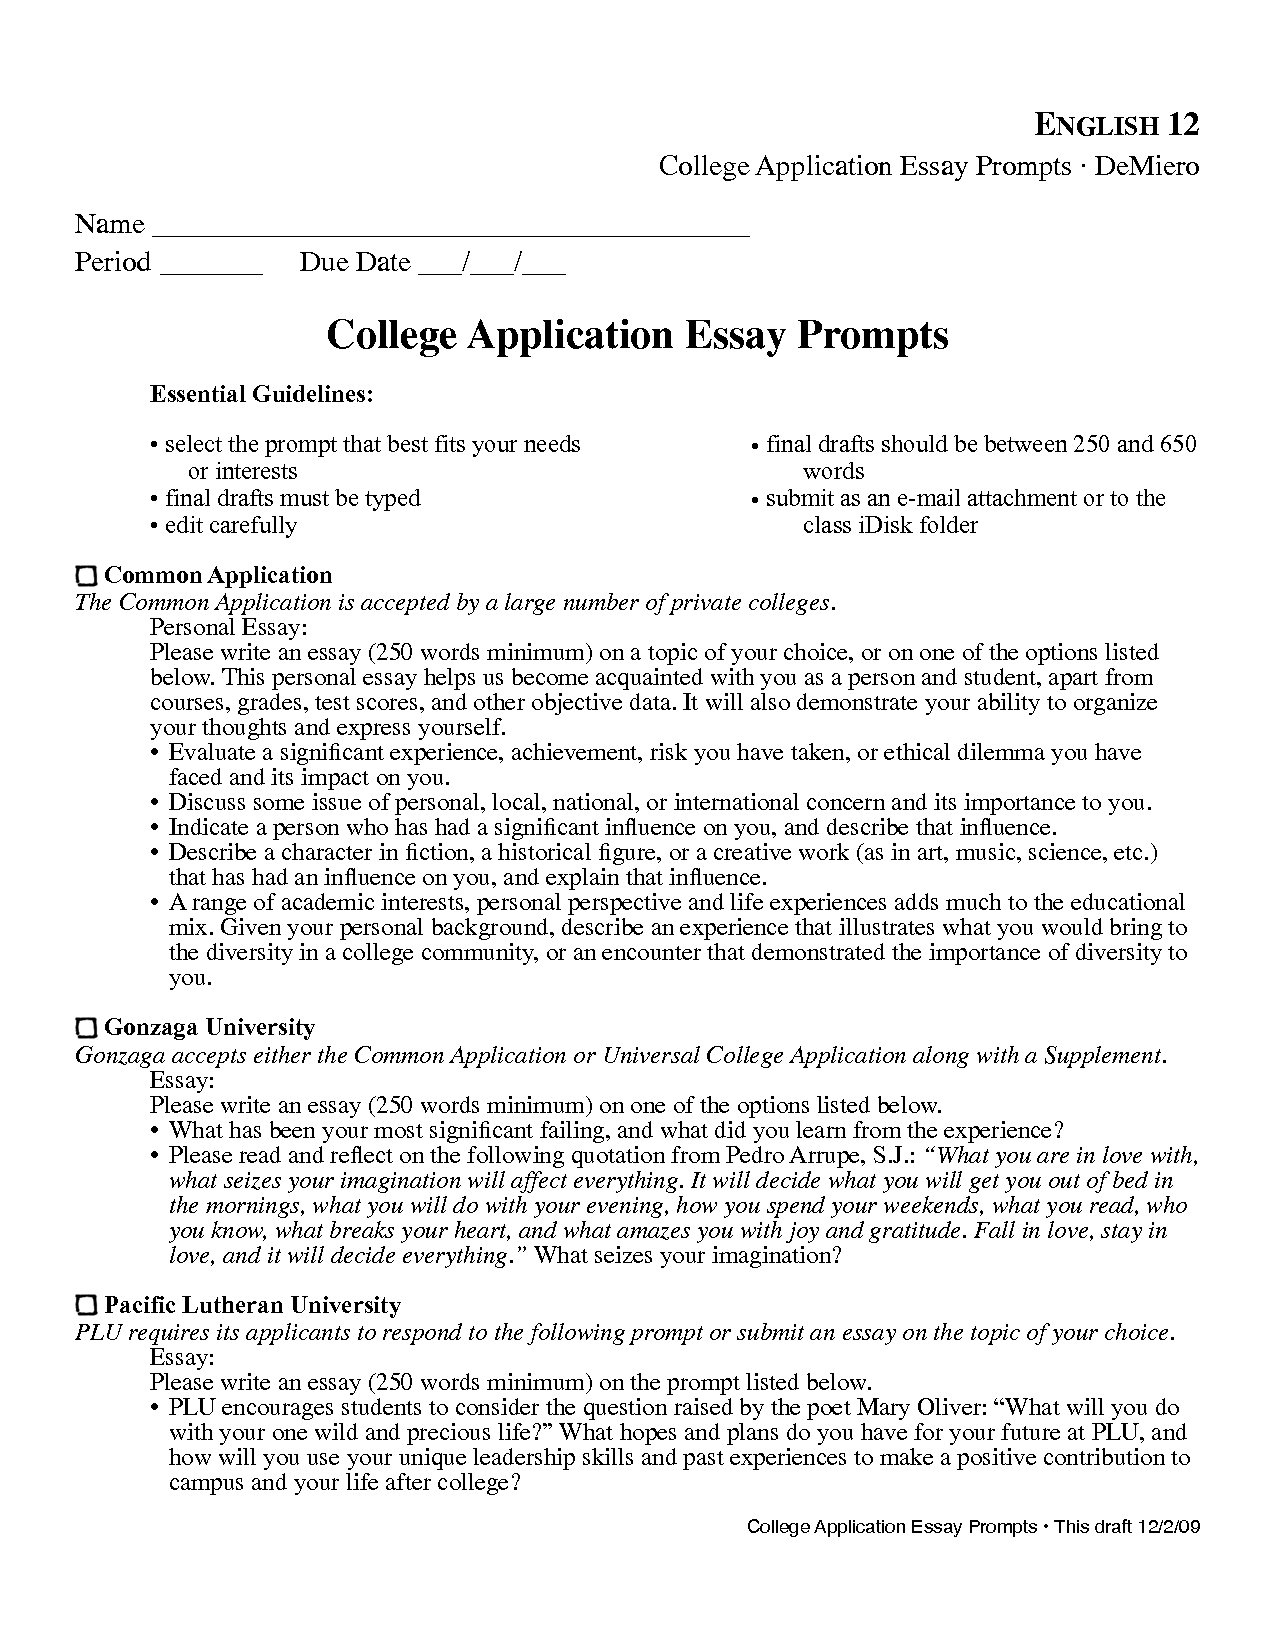 How to write a college application essay report